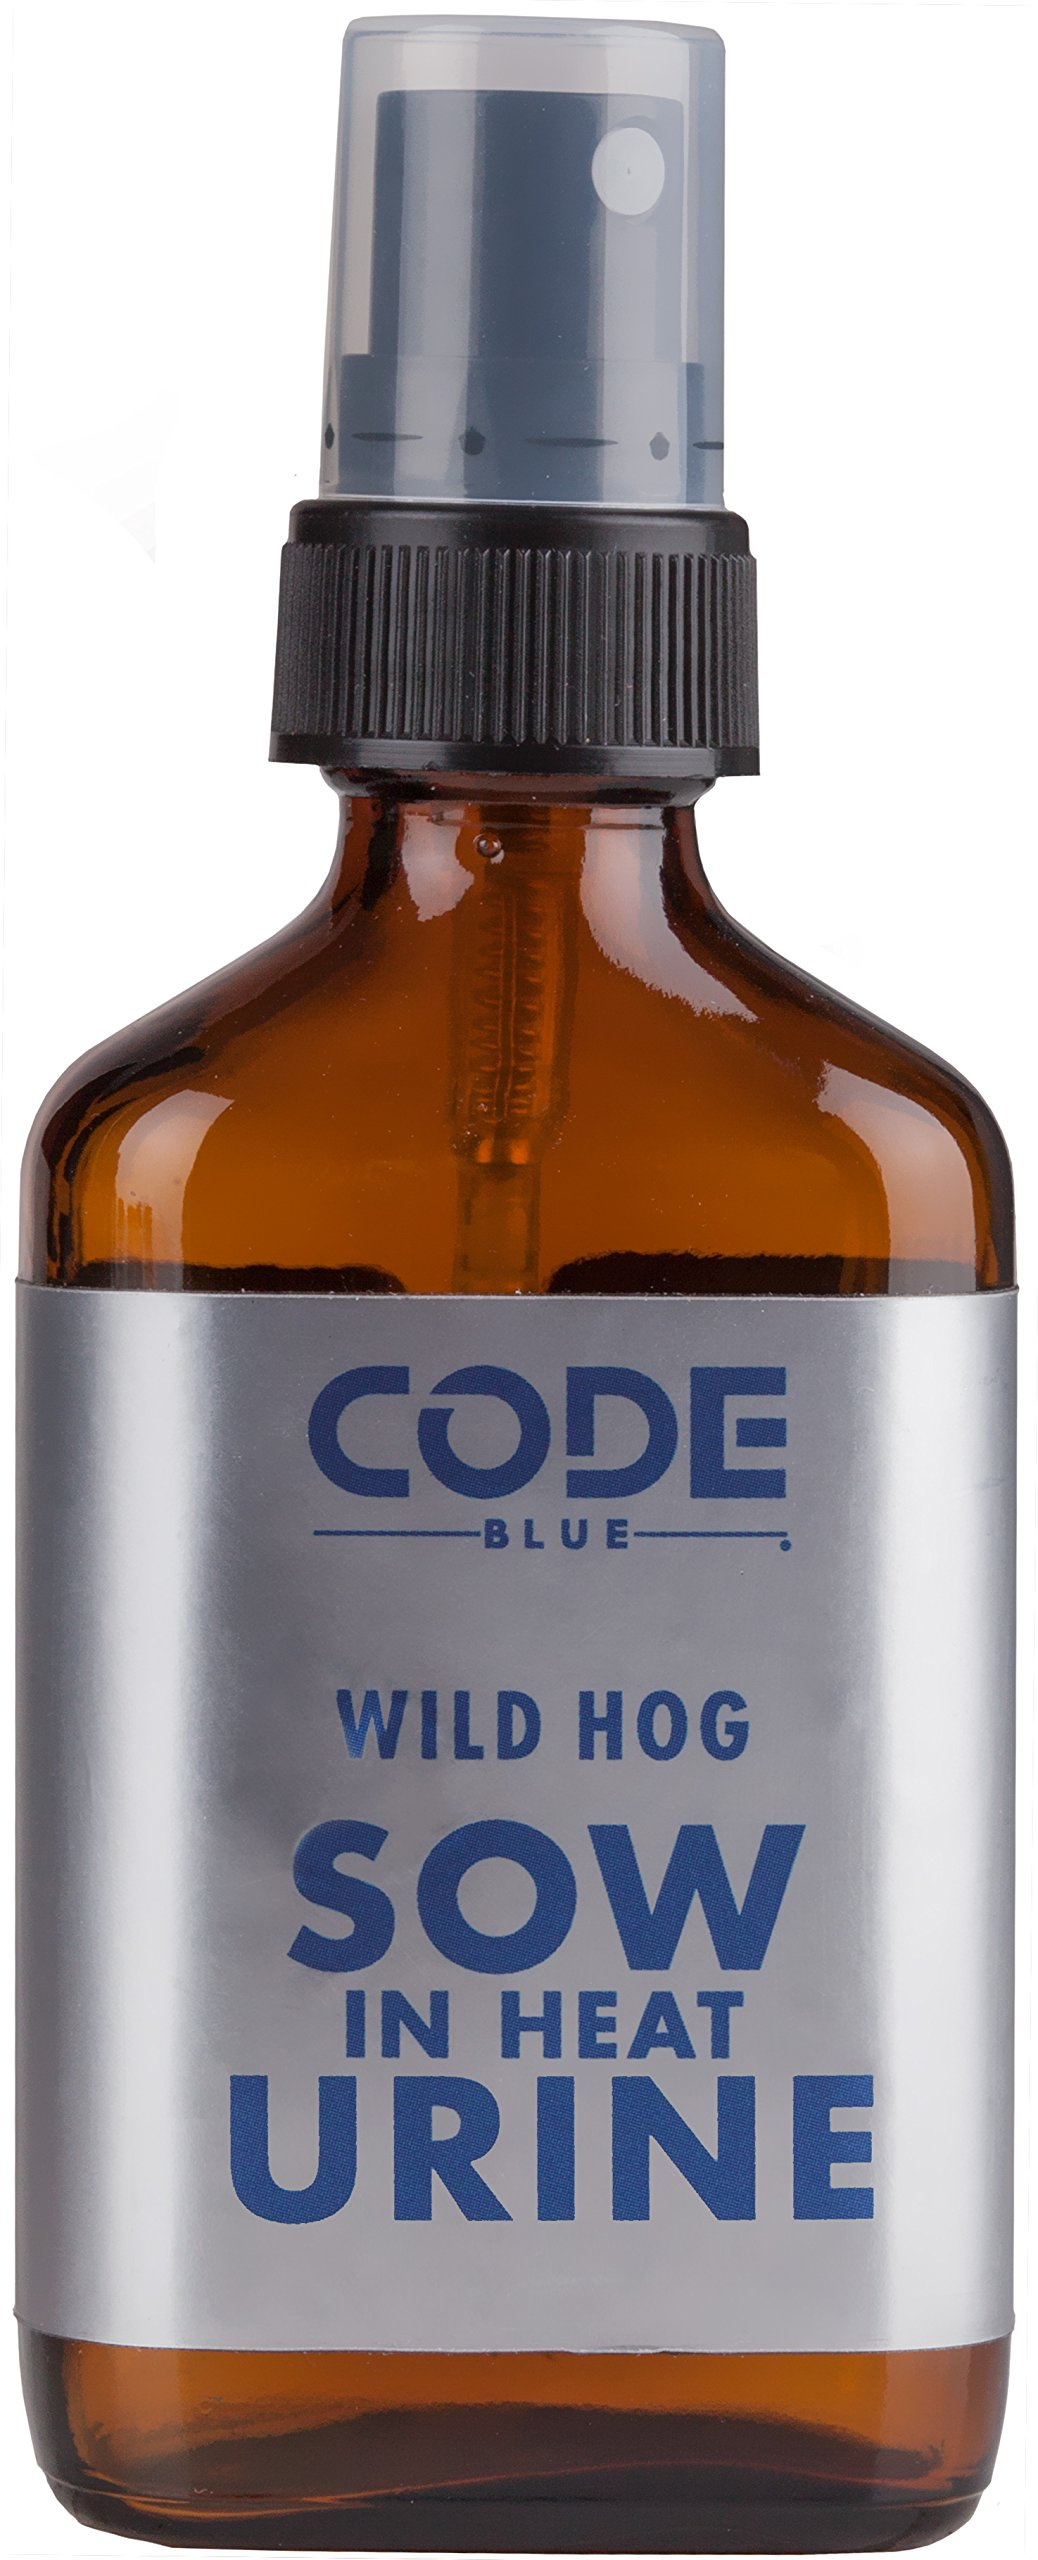 Code Blue Urine (2-Ounce)